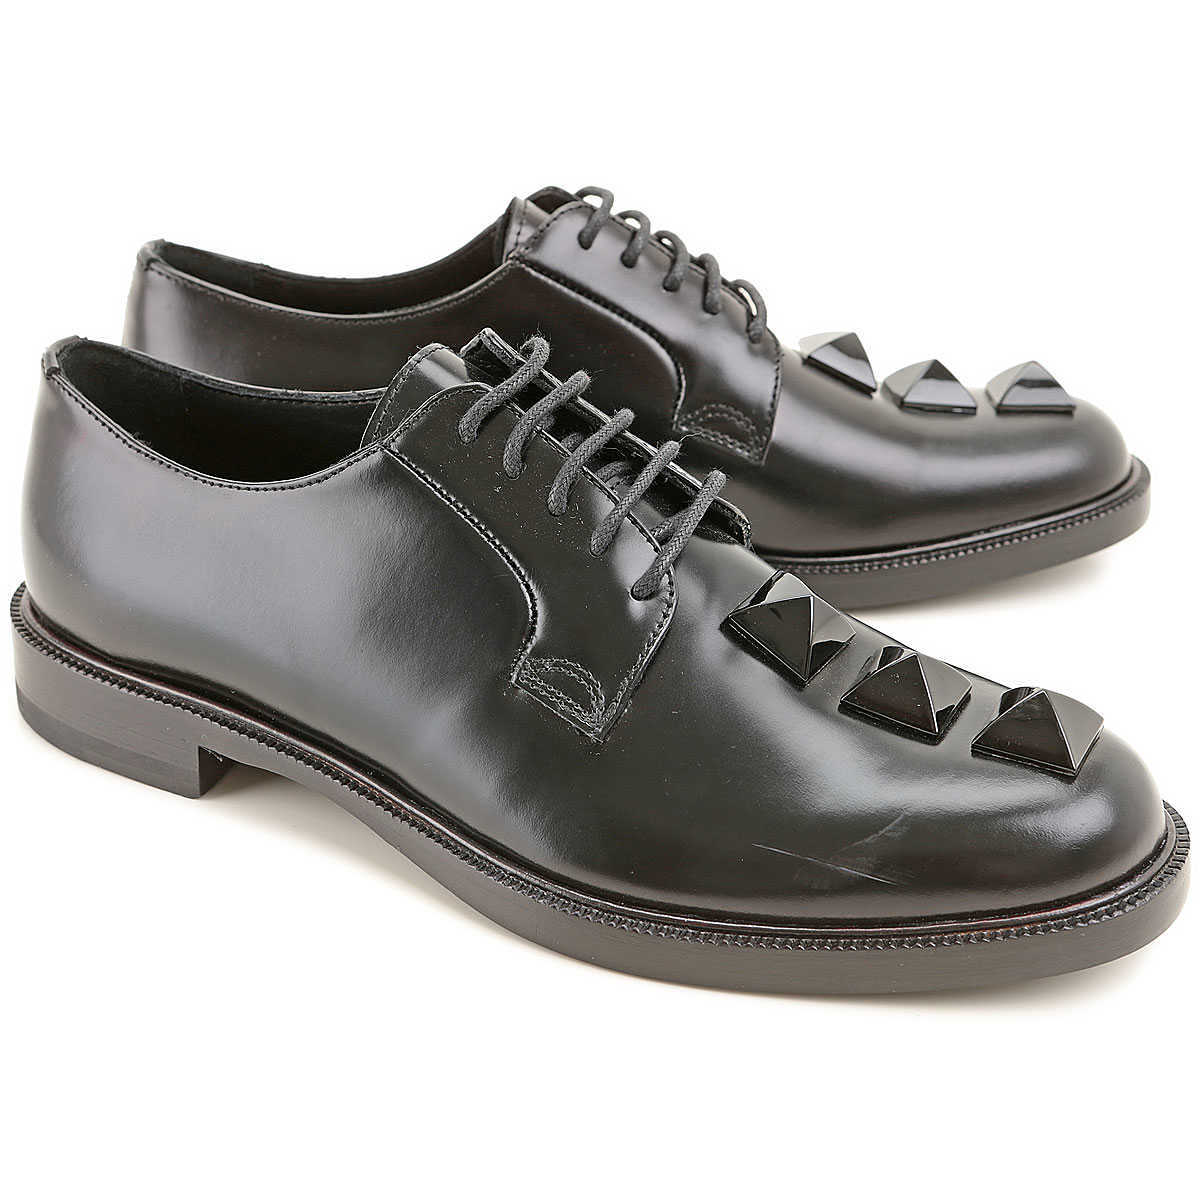 Giacomorelli Lace Up Shoes for Men Oxfords Derbies and Brogues On Sale in Outlet DK - GOOFASH - Mens FORMAL SHOES